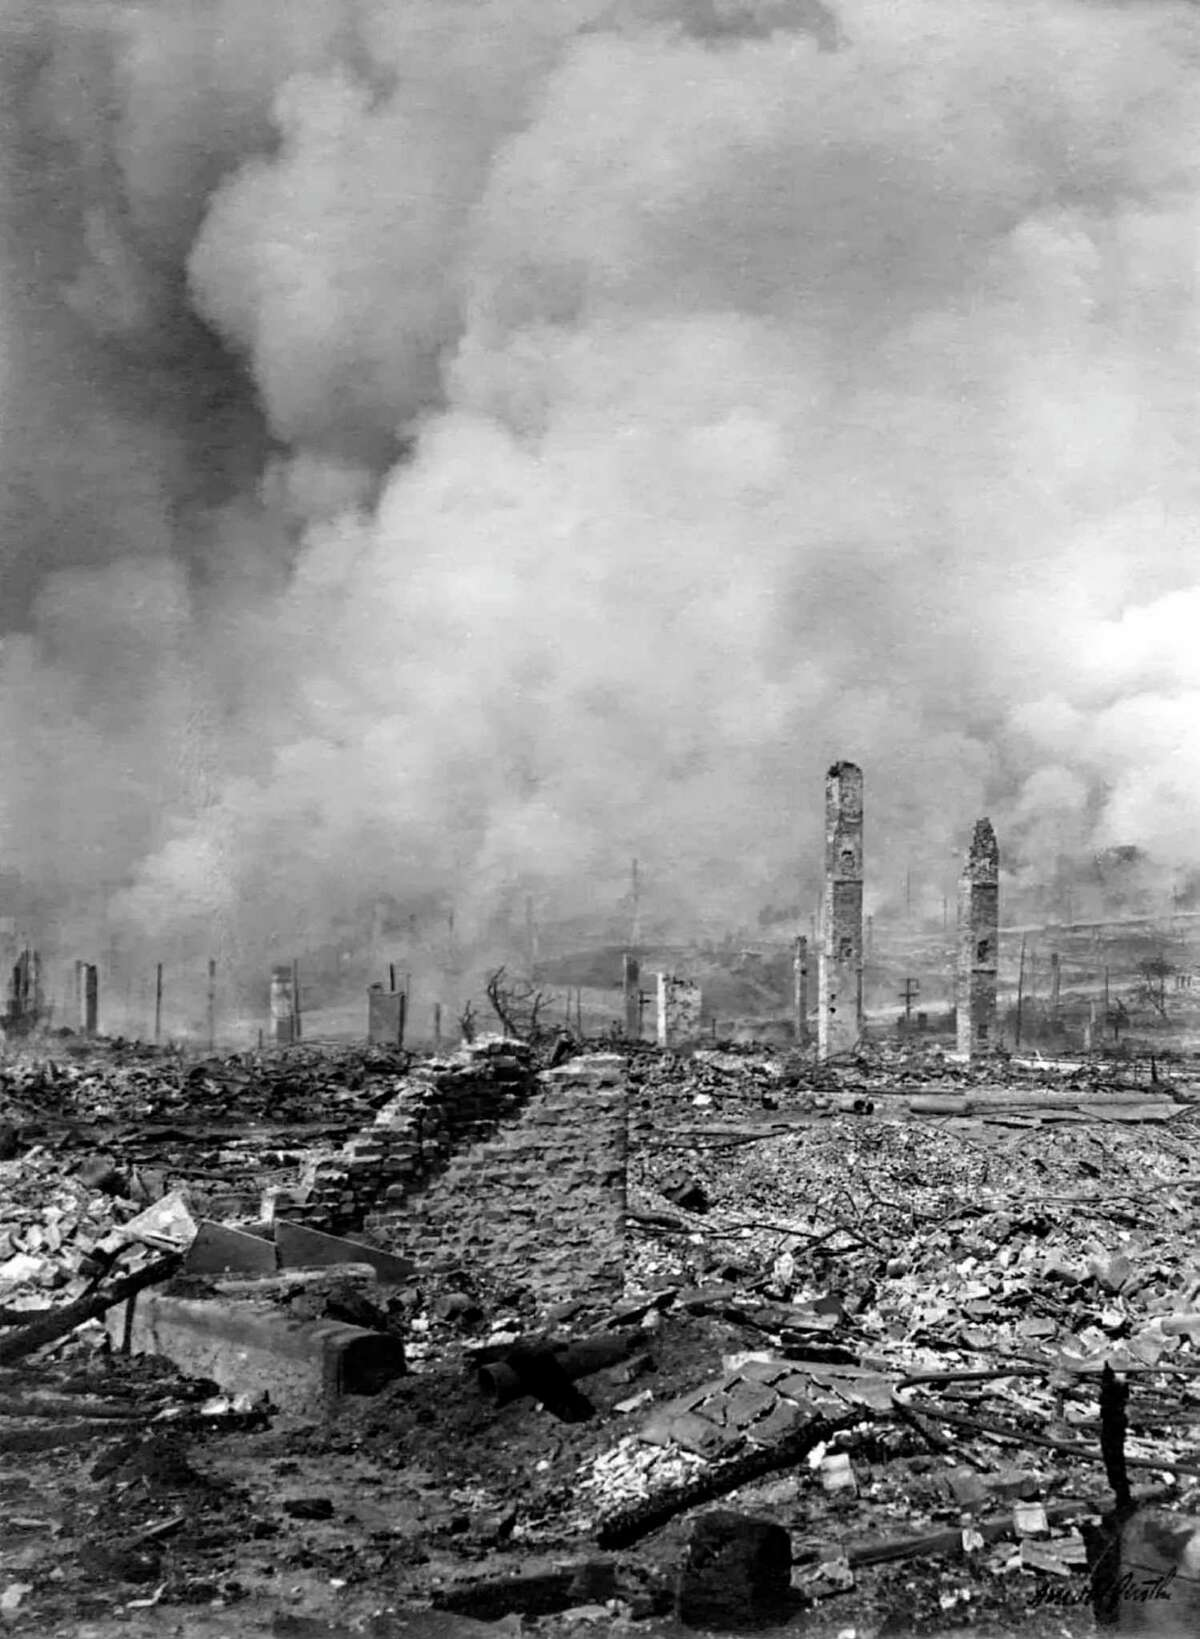 The last day of the fire following the San Francisco earthquake of 1906.